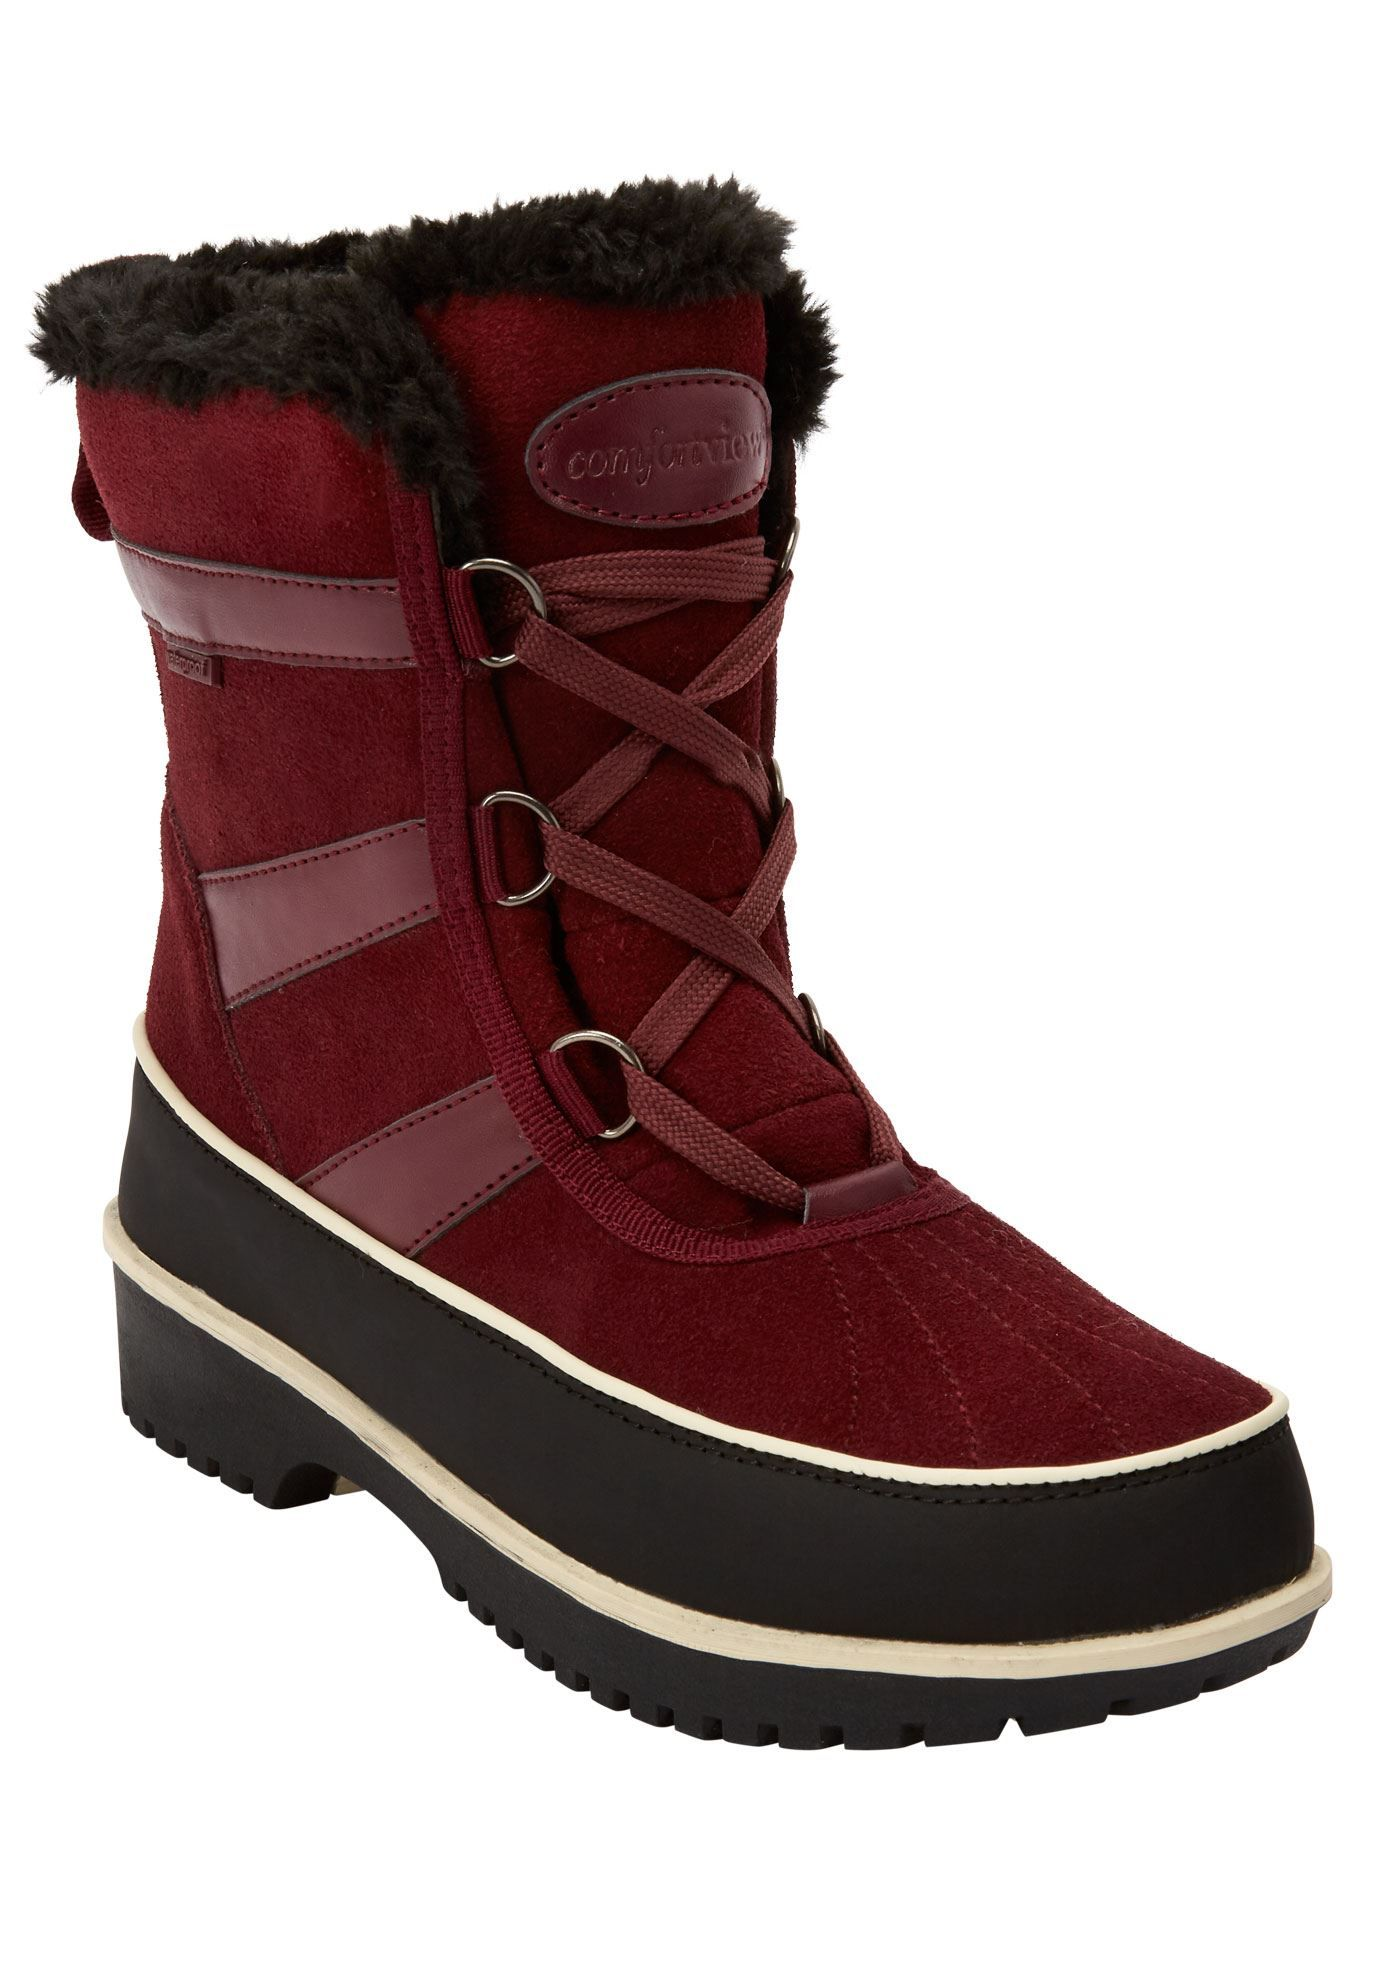 attractive colour compare price get new The Brienne Waterproof Boot by Comfortview - Women's Plus ...